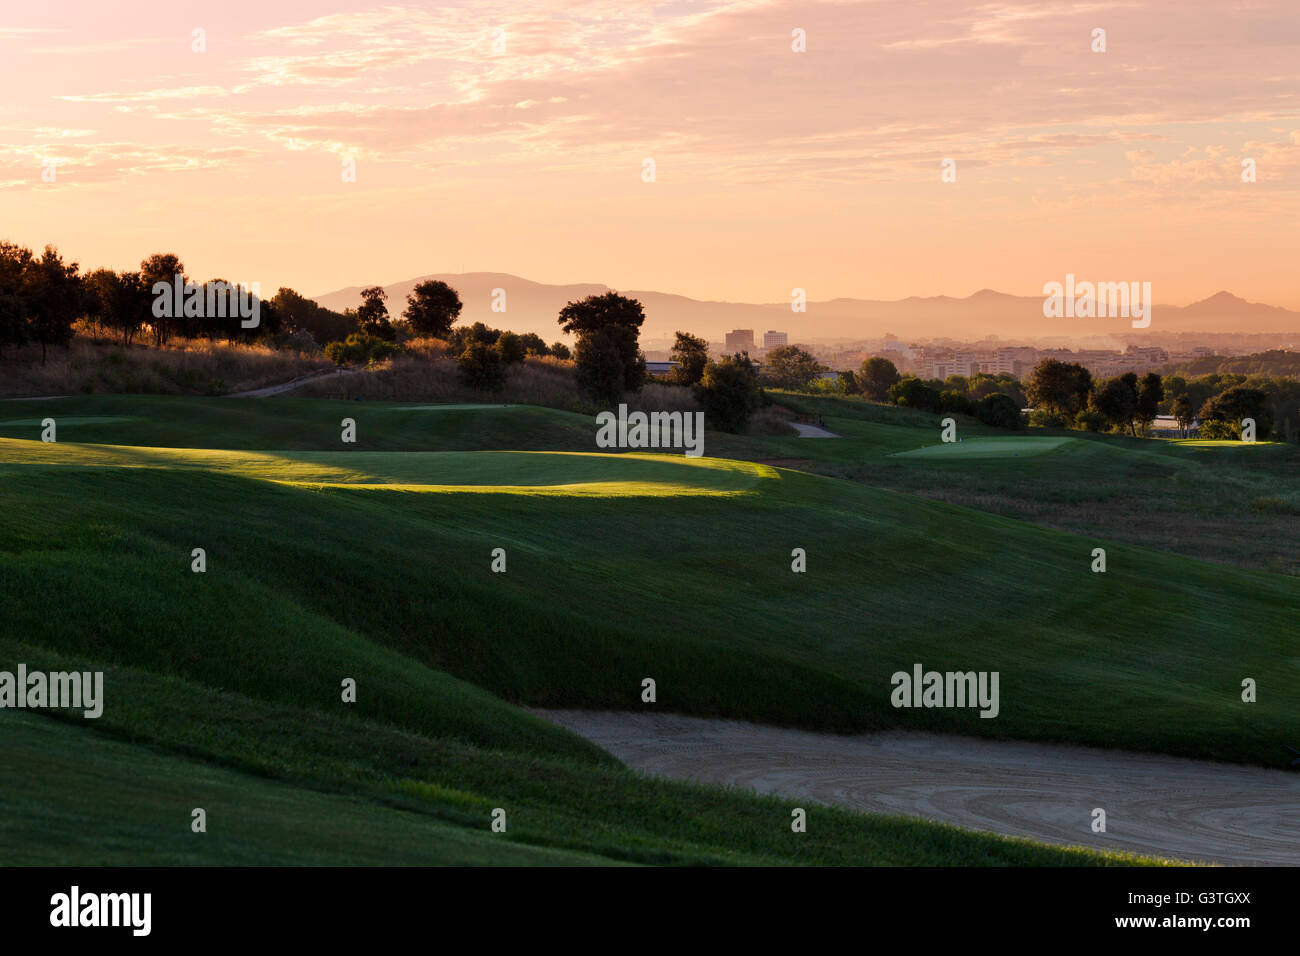 Spain. Barcelona, Real Club de Golf El Prat, Grassy hills of golf course in shadow with distant cityscape in background - Stock Image